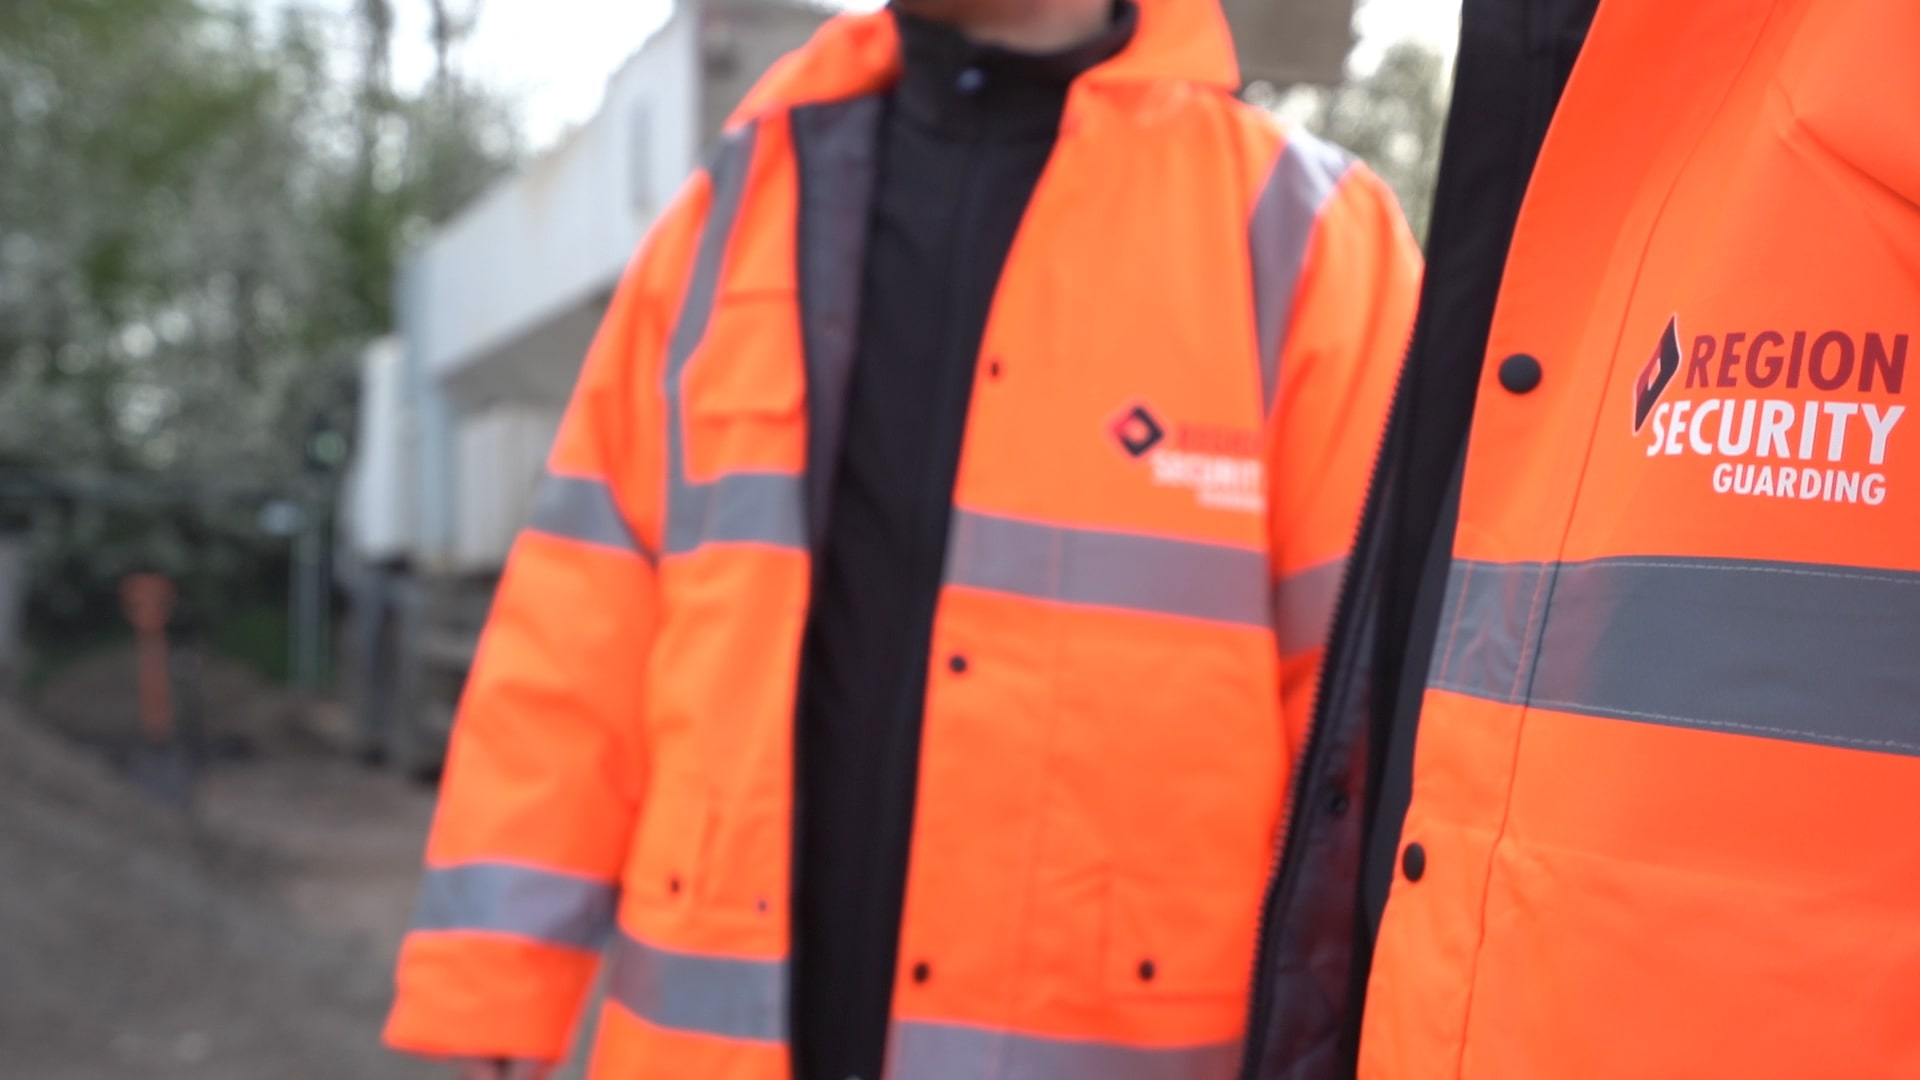 Construction security in Nottingham